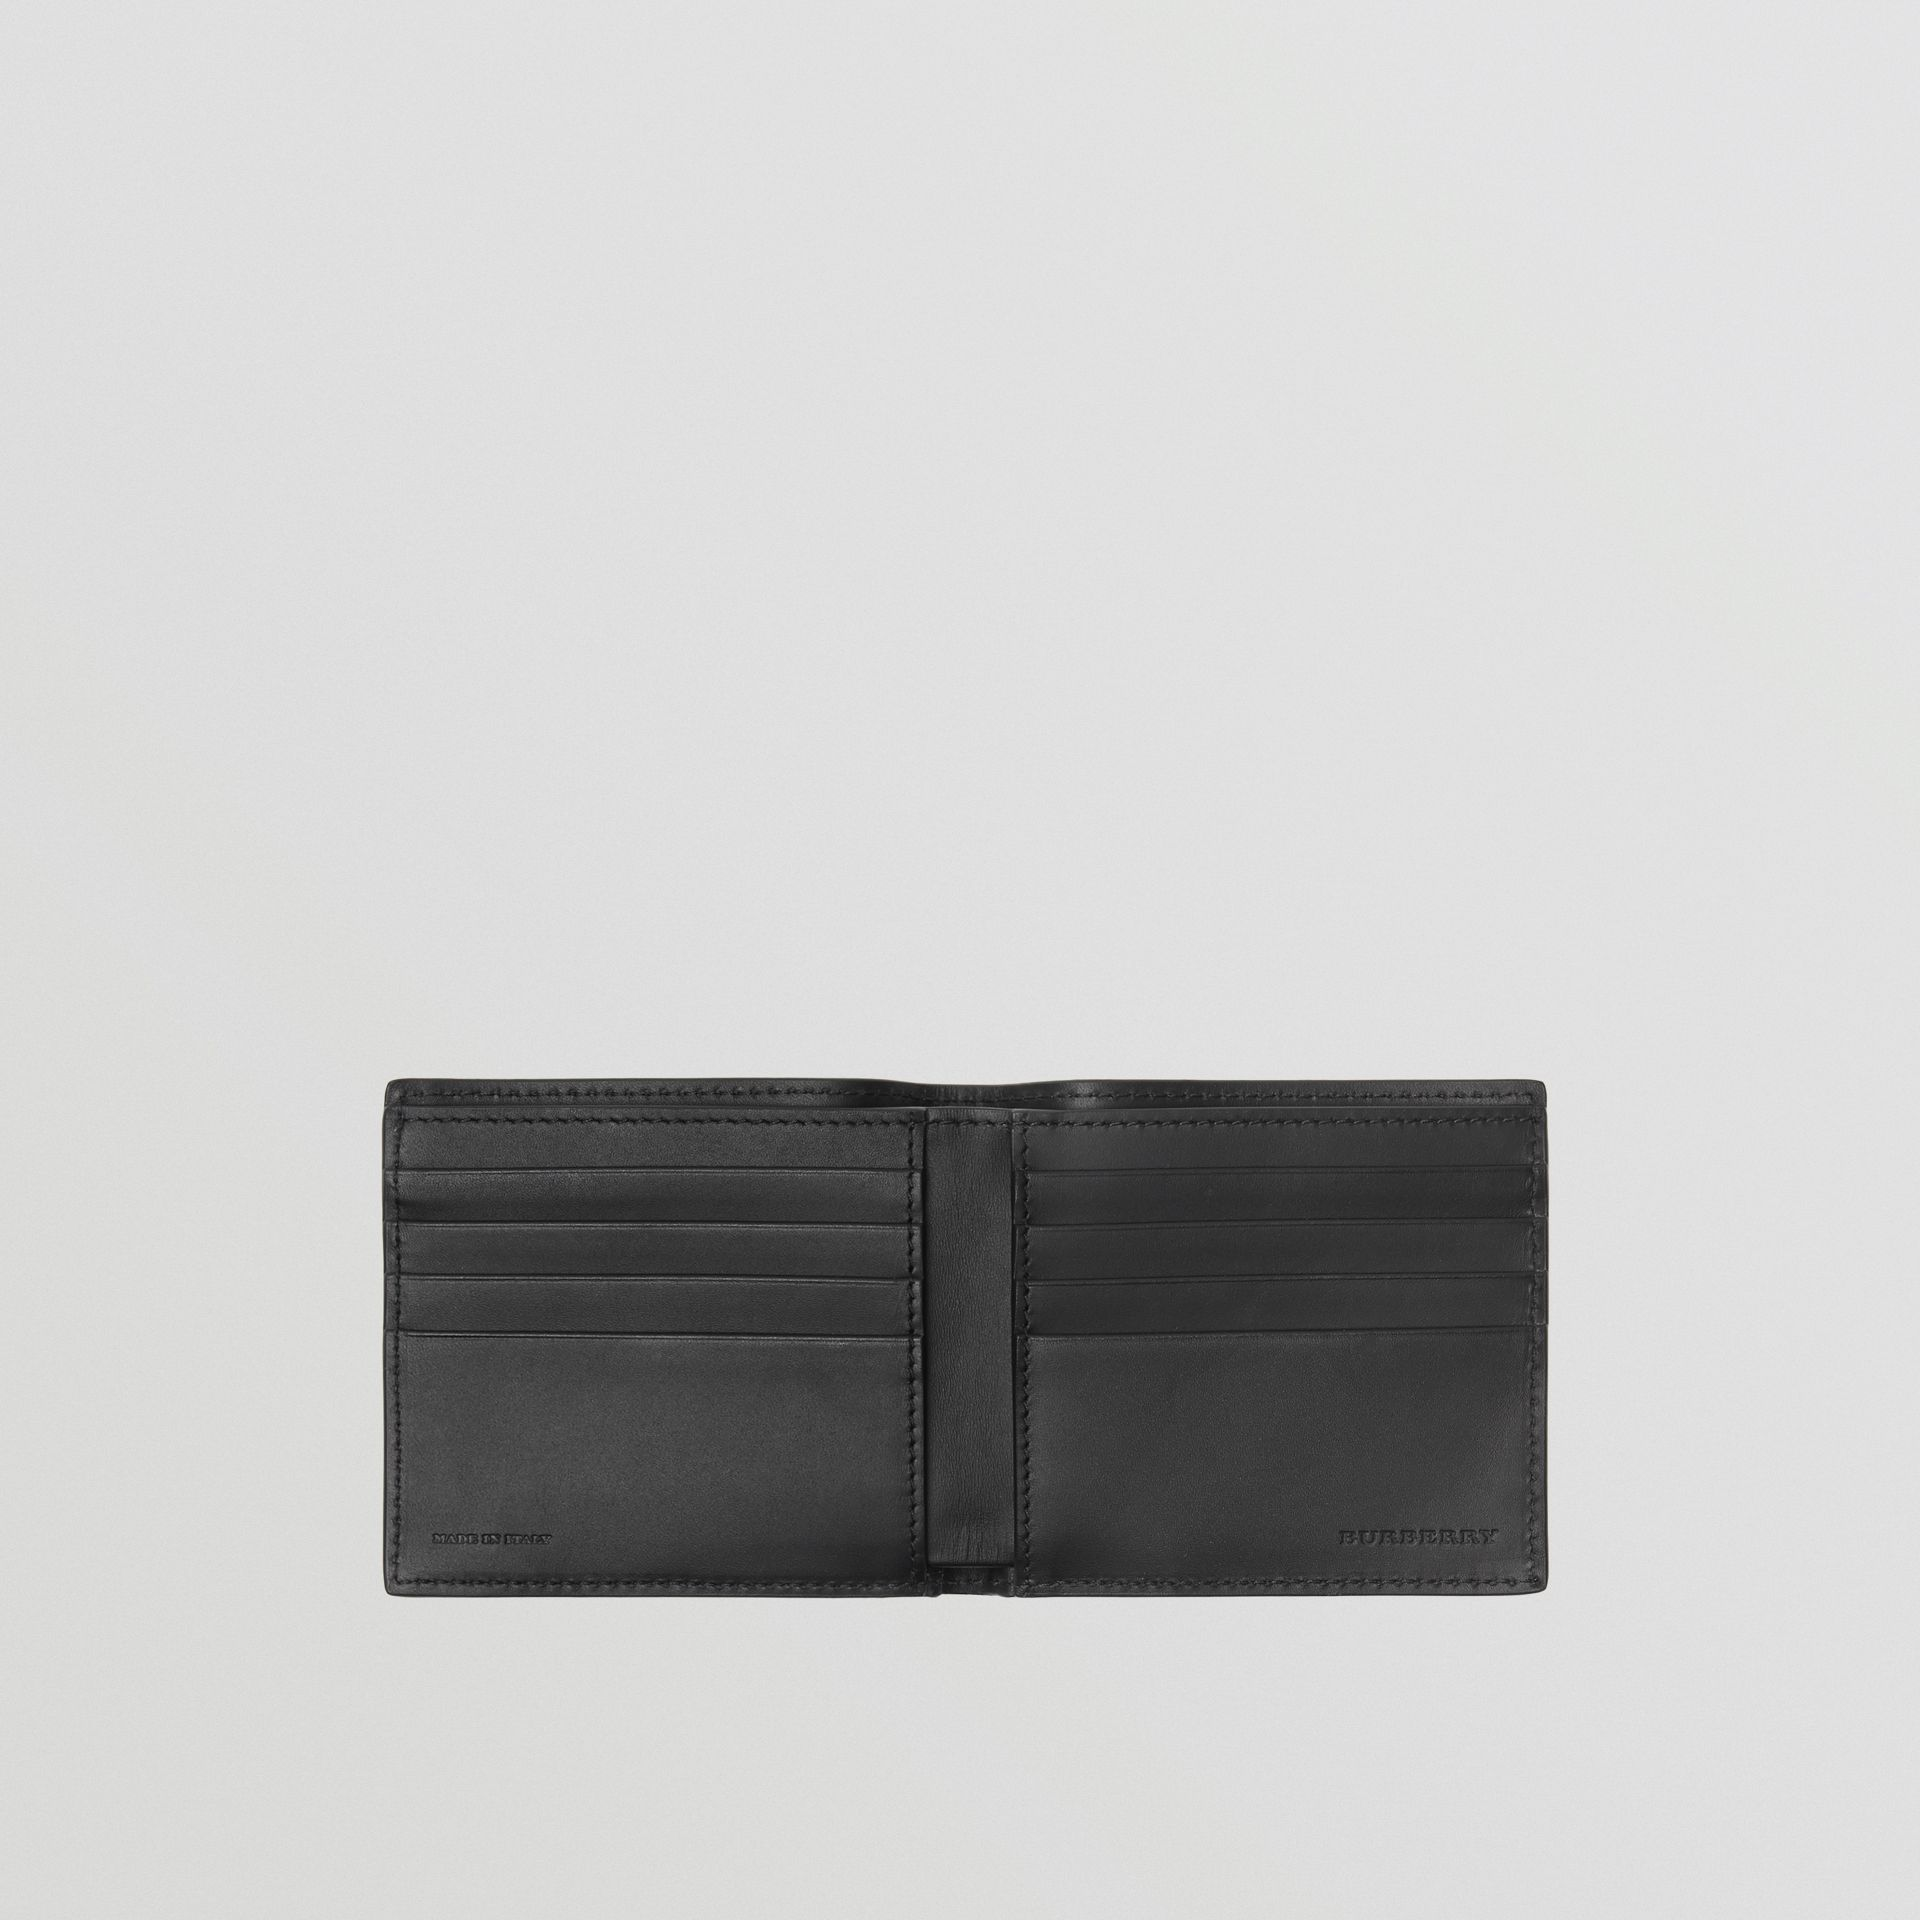 Graffiti Print Leather International Bifold Wallet in Black - Men | Burberry United States - gallery image 2